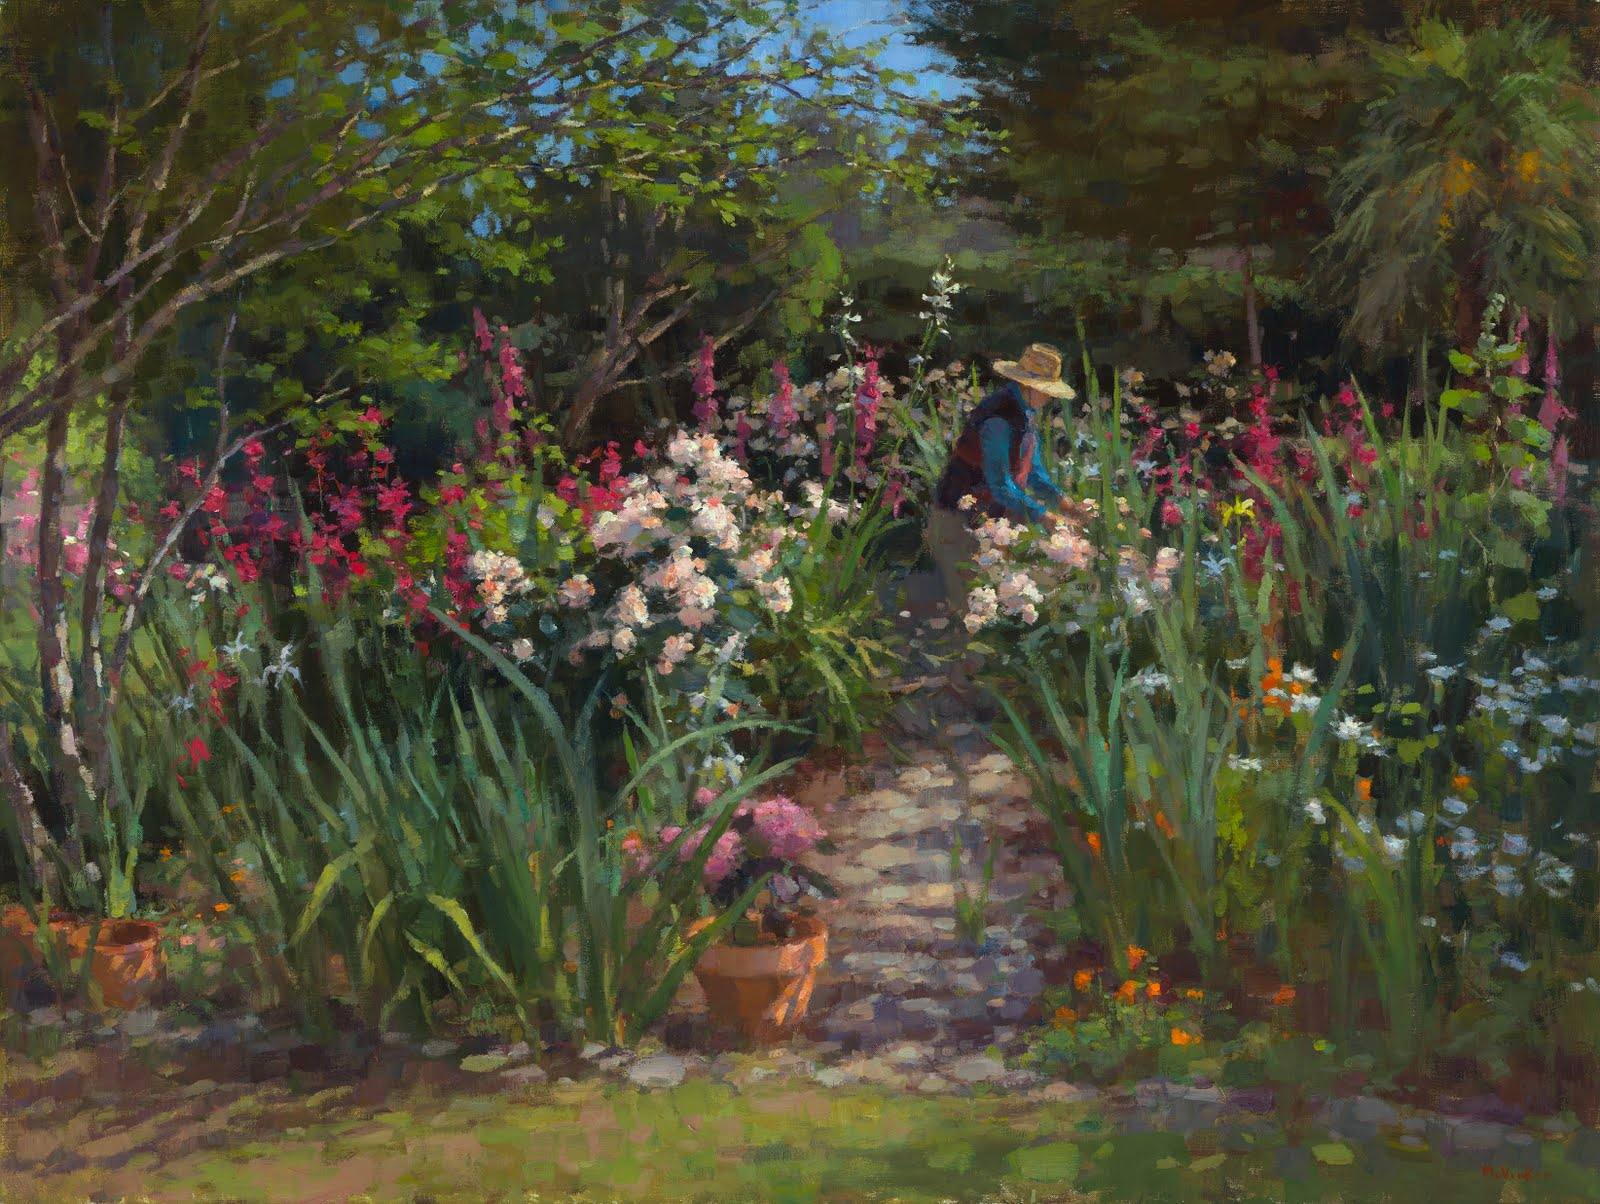 Jim mcvicker paintings solo show george stern fine arts for Tending to the garden